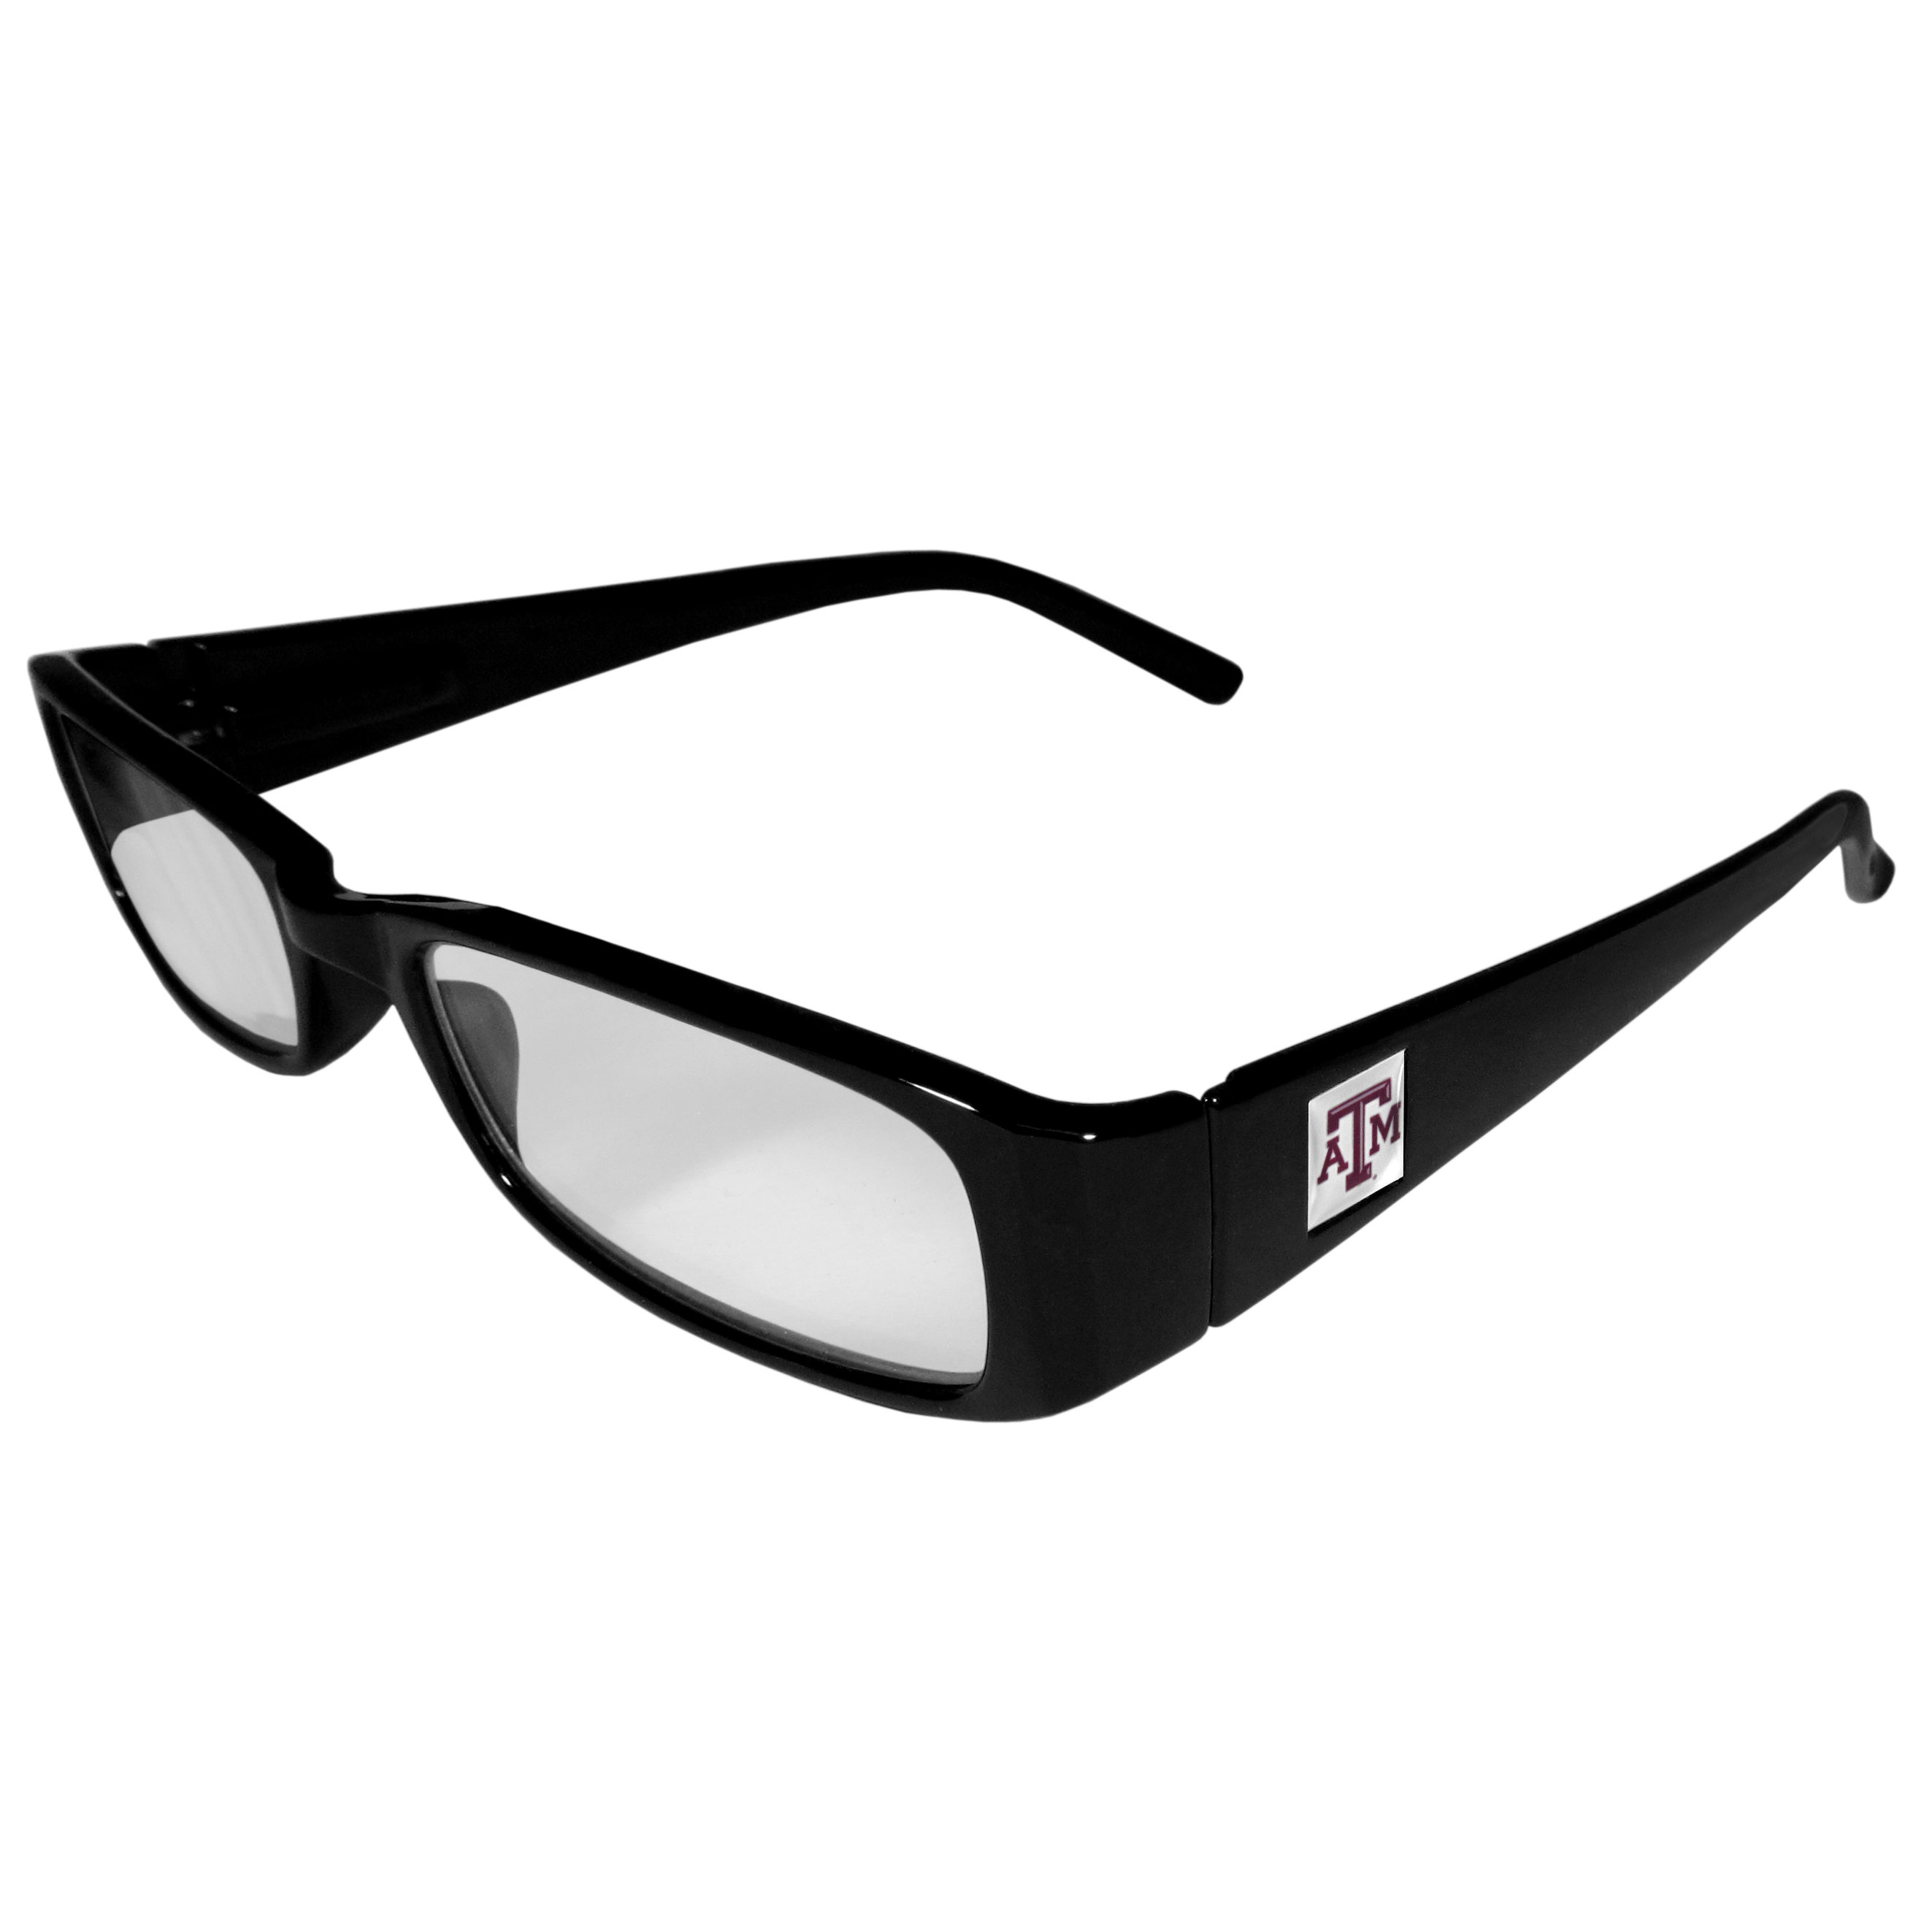 Texas A and M Aggies Black Reading Glasses +1.25 - Our Texas A & M Aggies reading glasses are 5.25 inches wide and feature the team logo on each arm. Magnification Power 1.25